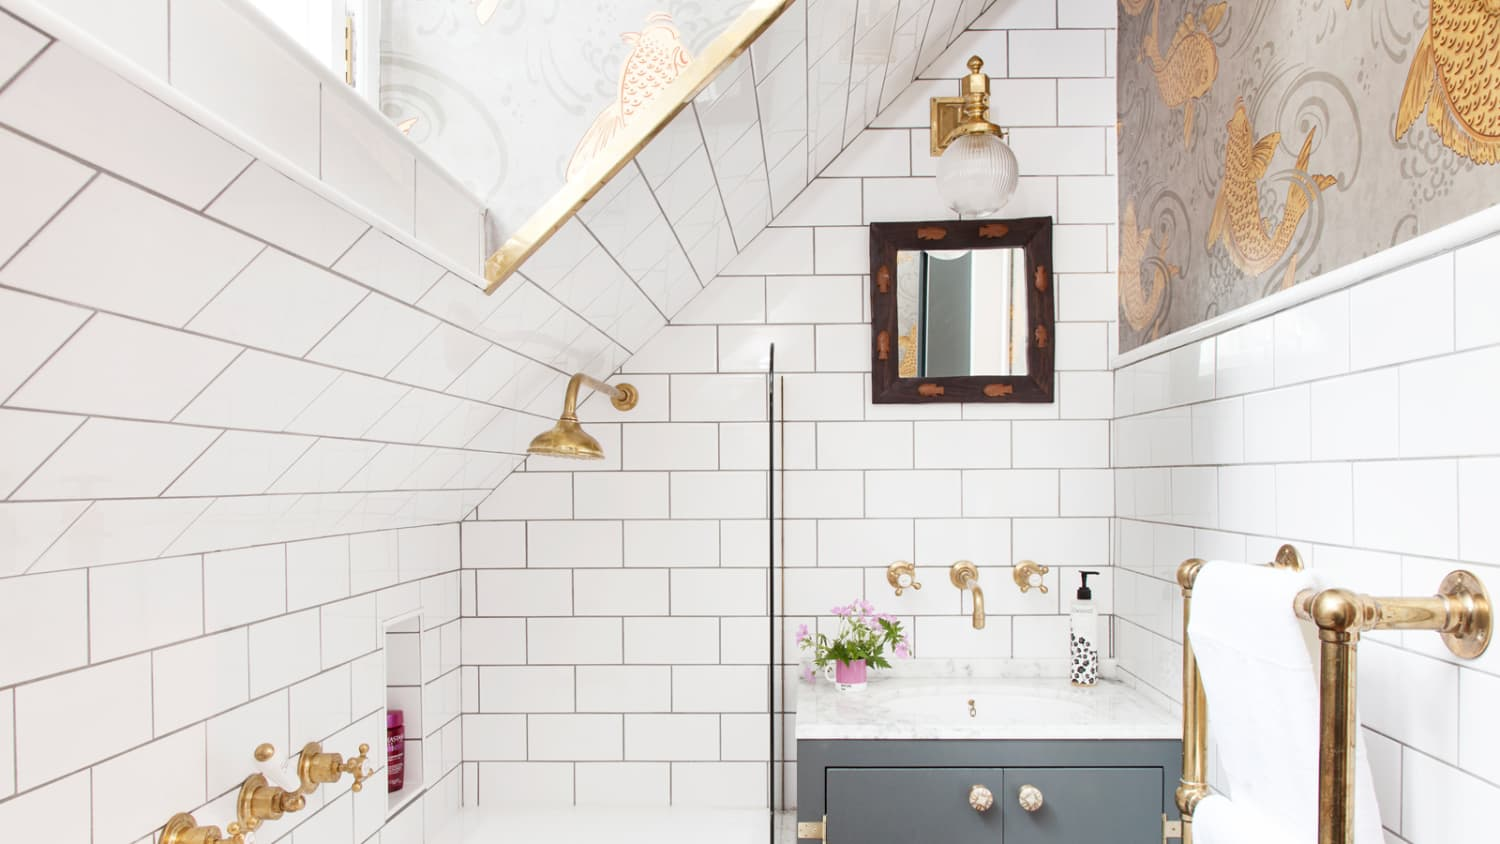 This One Tiny Tweak Will Make Your Small Bathroom Look So Much Bigger Apartment Therapy